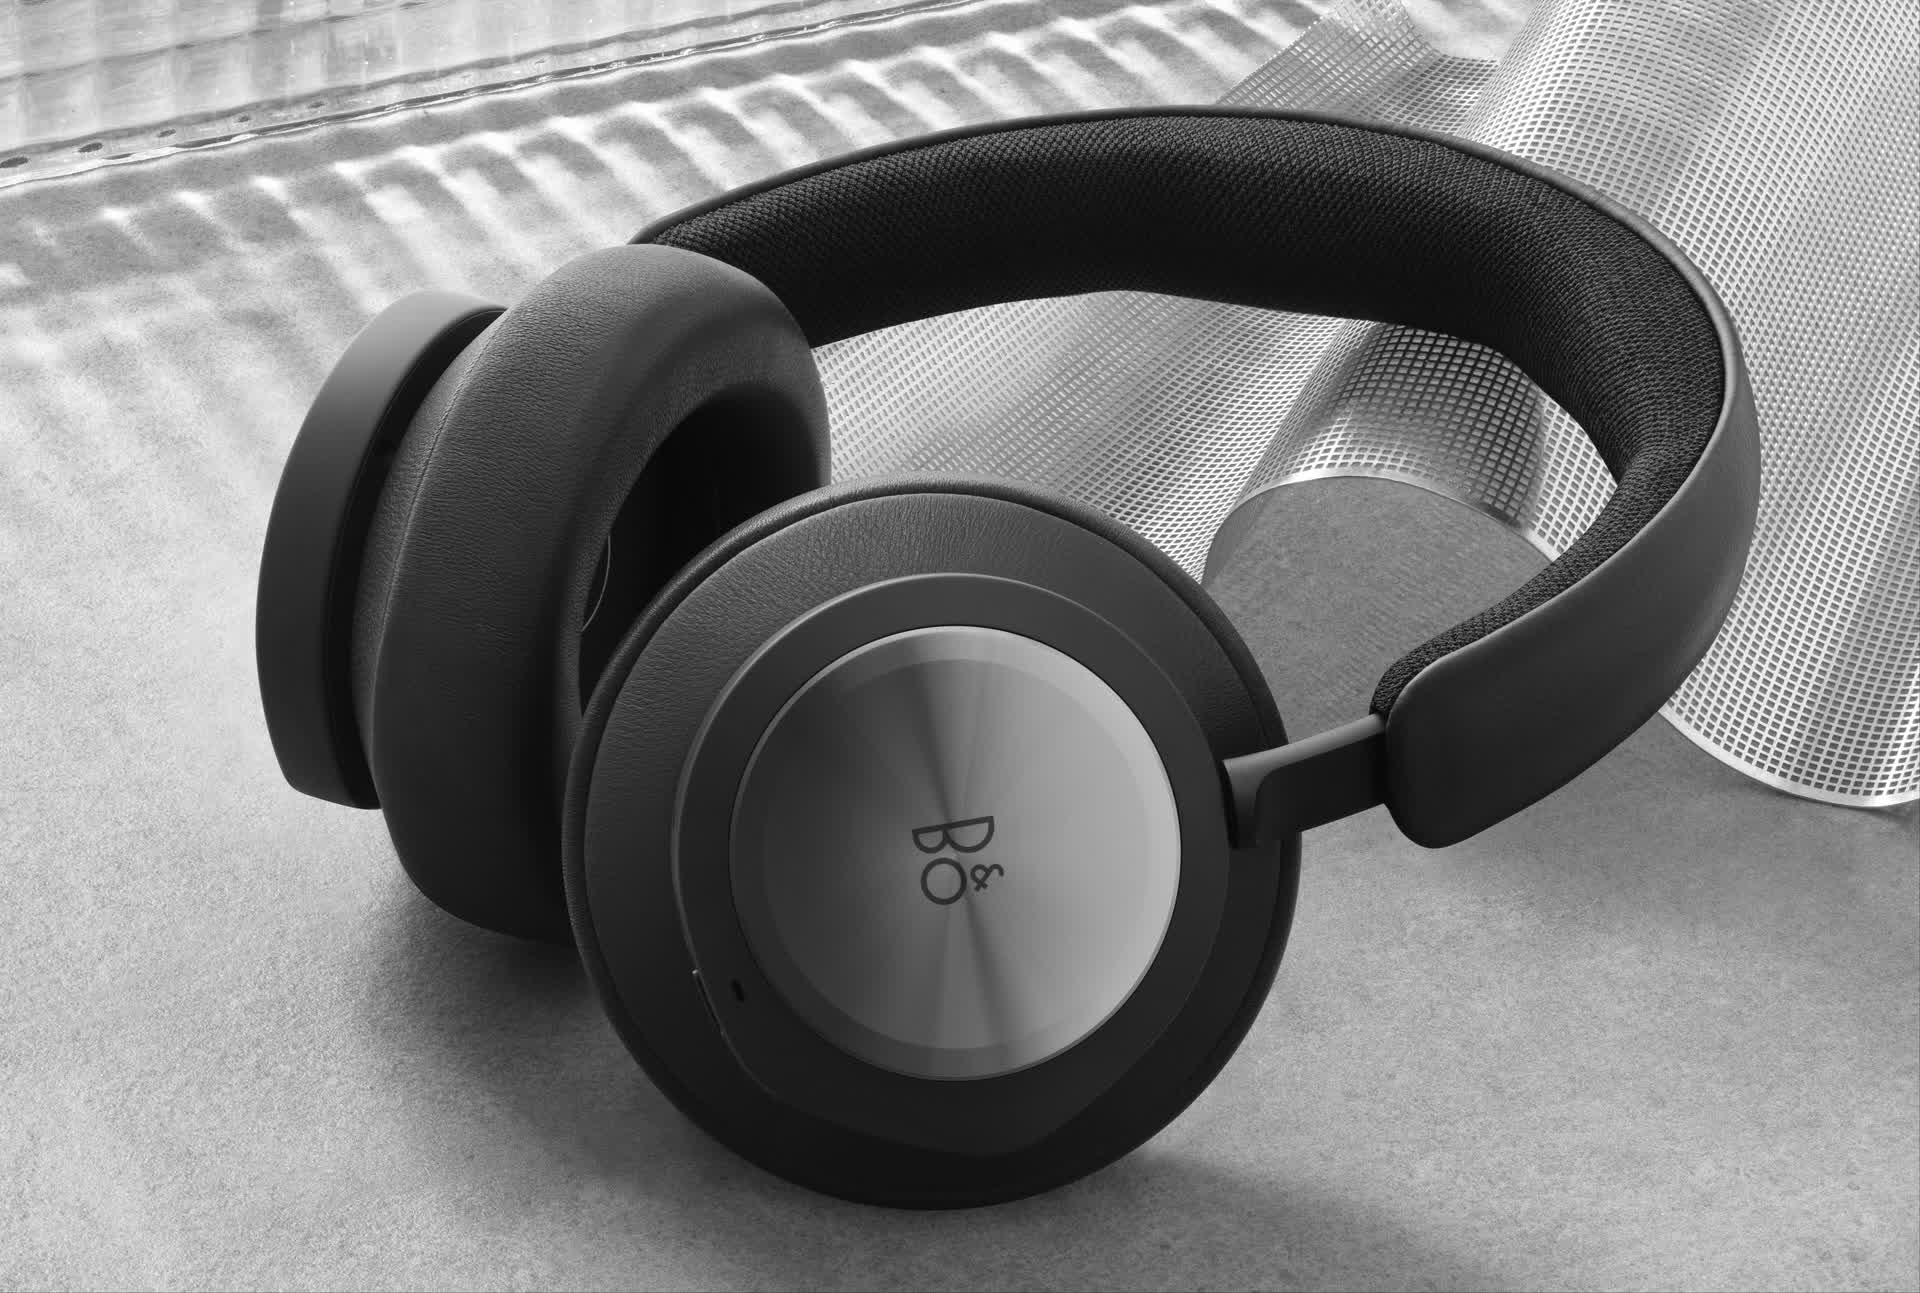 Bang & Olufsen's new wireless gaming headset is the same price as an Xbox Series X